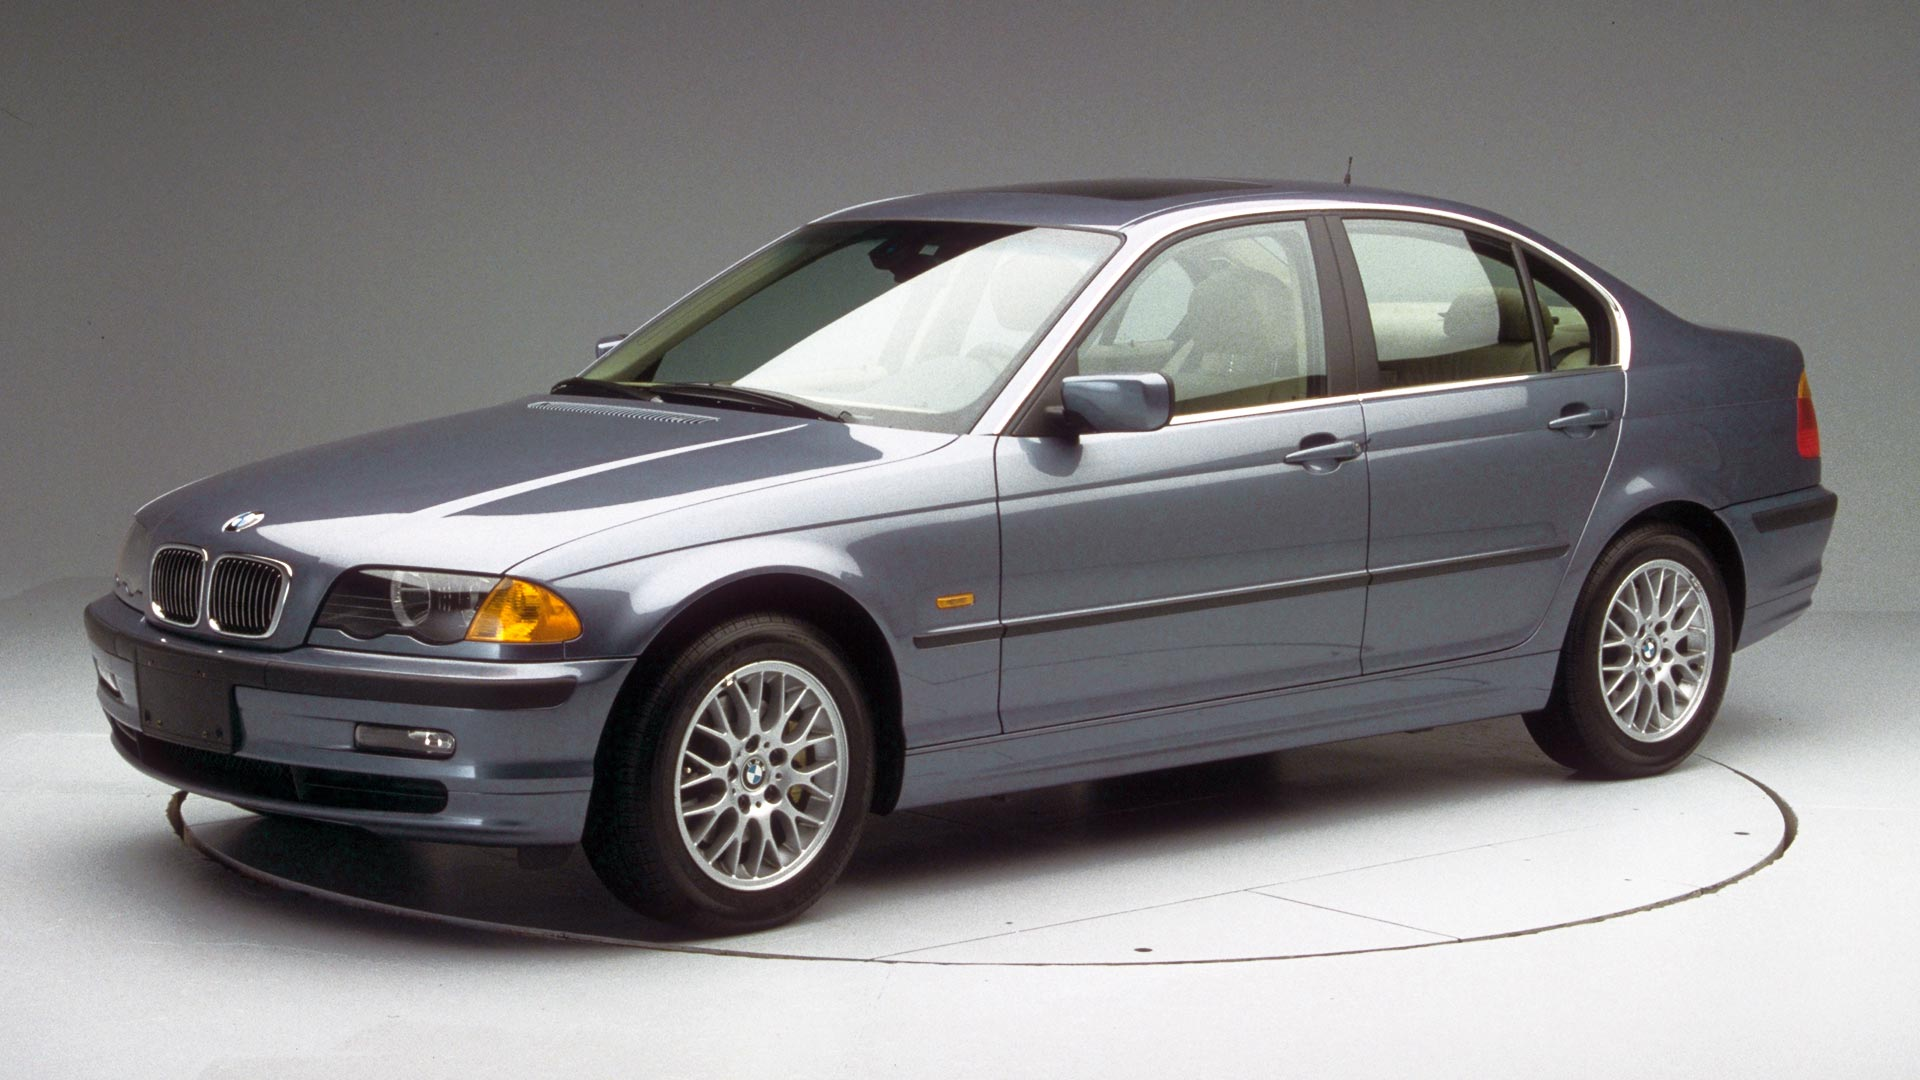 2003 BMW 3 series 4-door sedan